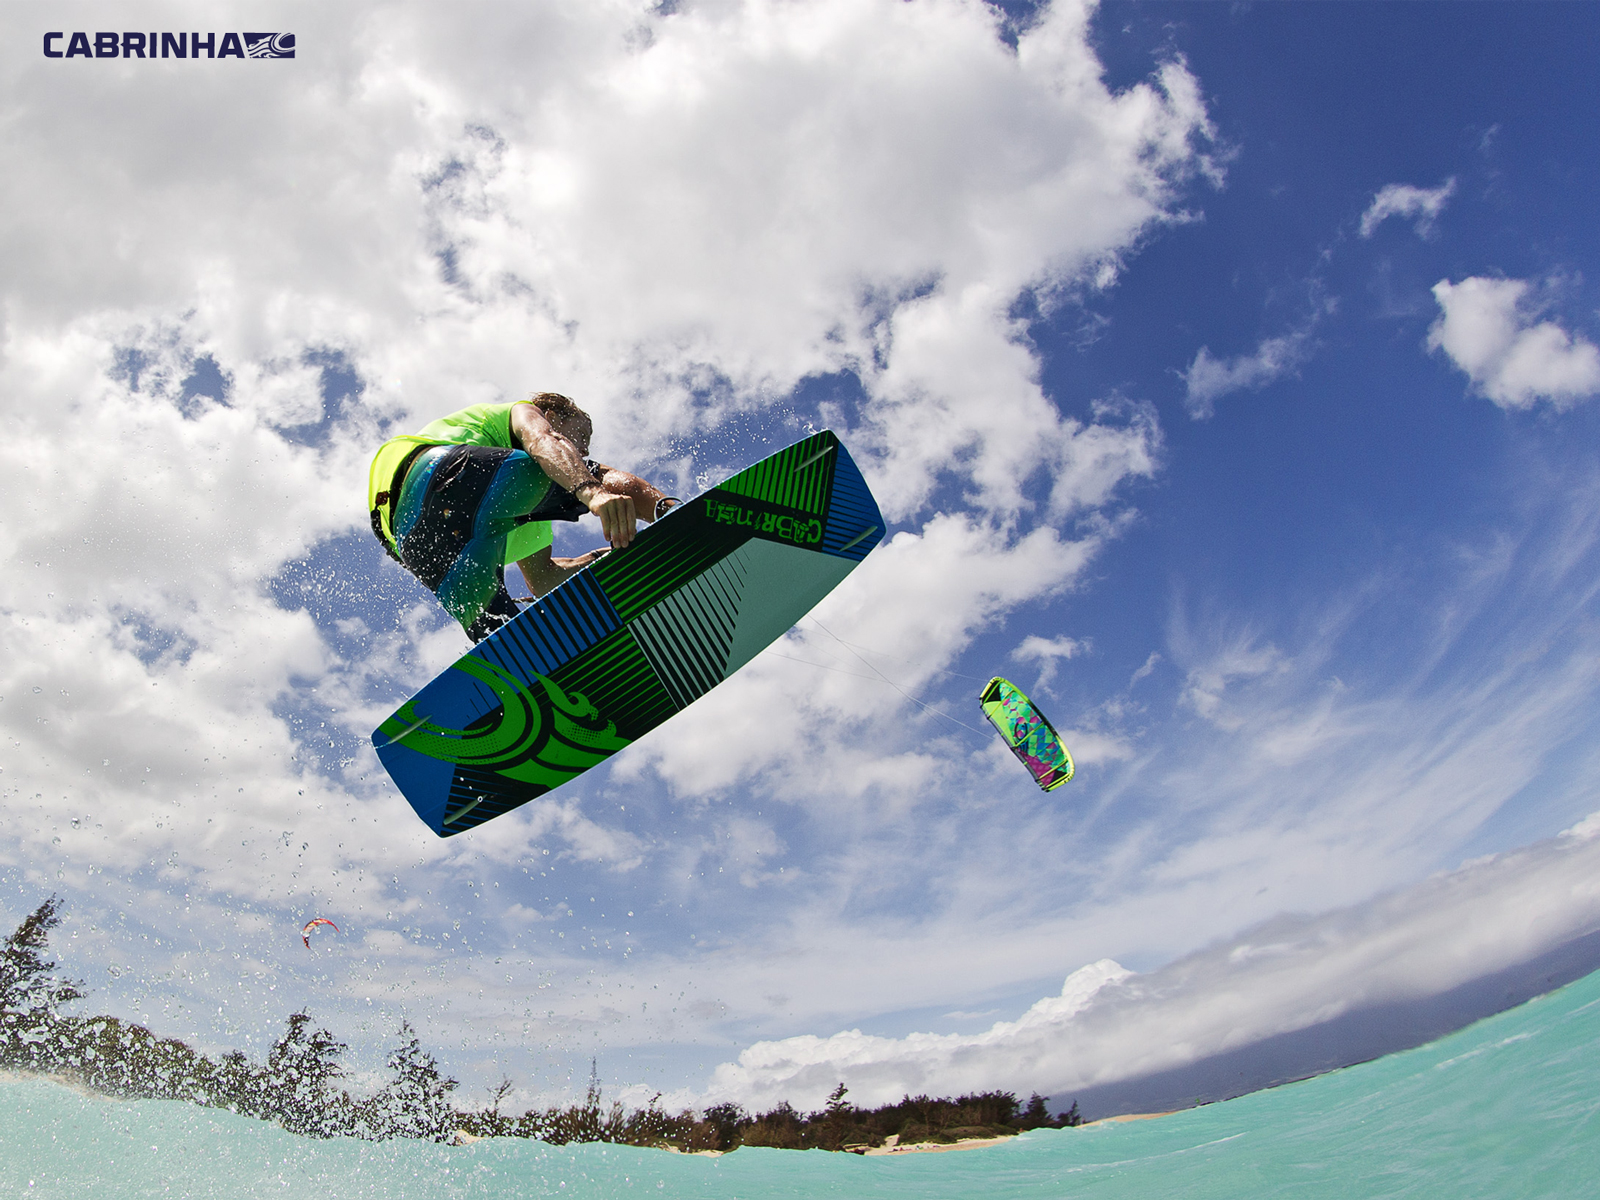 kitesurf wallpaper image - Alberto Rondina flying over tropical water on his Cabrinha kite - in resolution: Standard 4:3 1600 X 1200